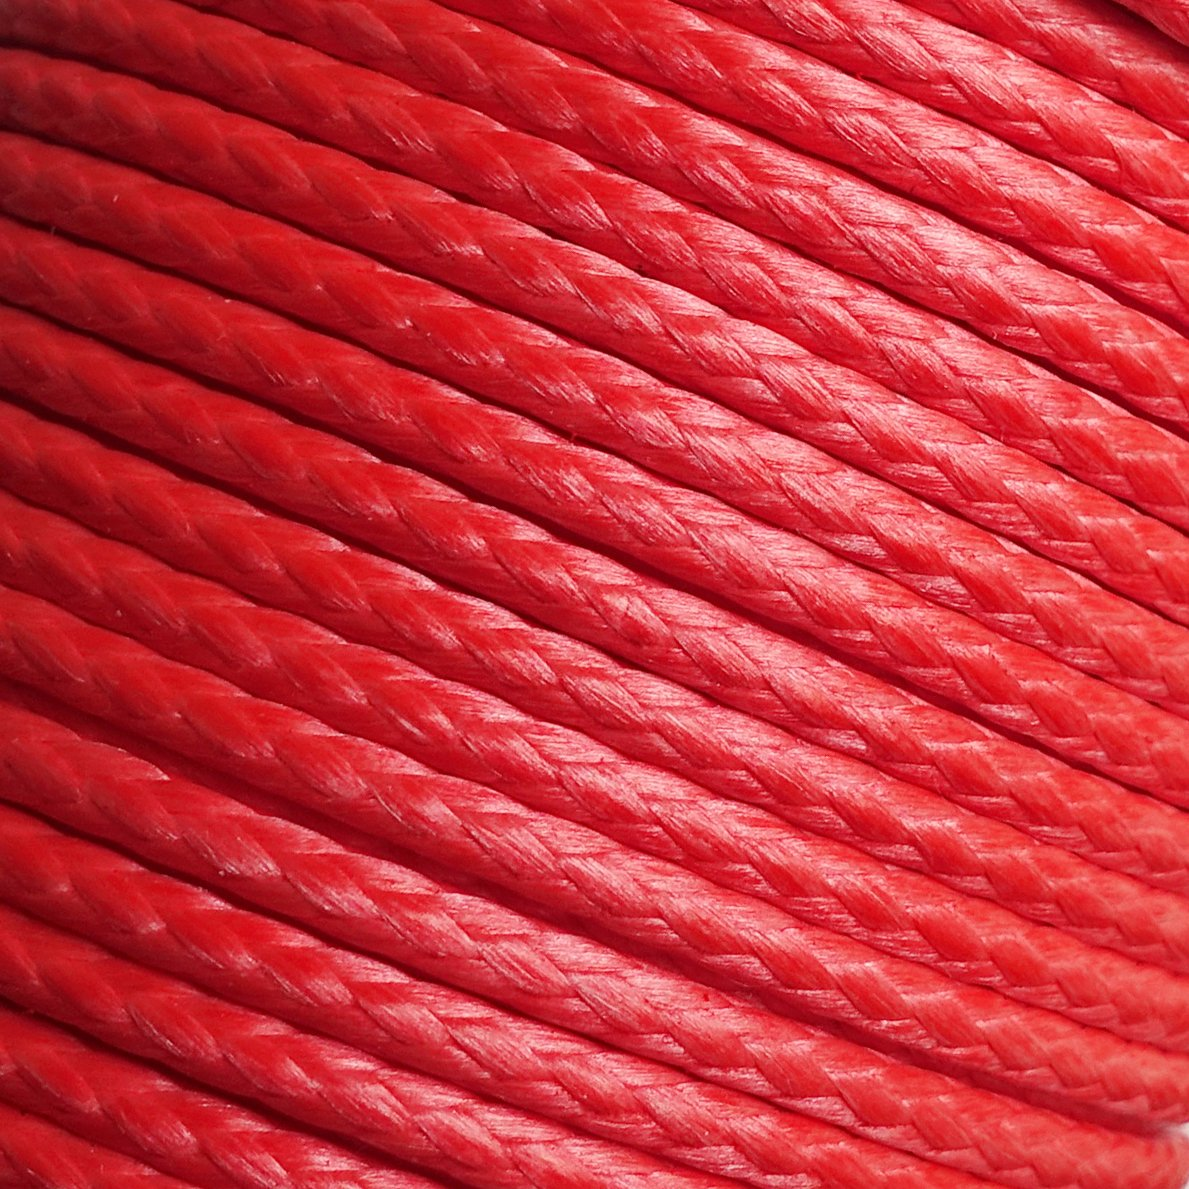 emma kites Red UHMWPE Braided Cord High Strength Least Stretch Tent Tarp Rain Fly Guyline Hammock Ridgeline Suspension for Camping Hiking Backpacking Survival Recreational Marine Outdoors 100Ft 350Lb by emma kites (Image #2)